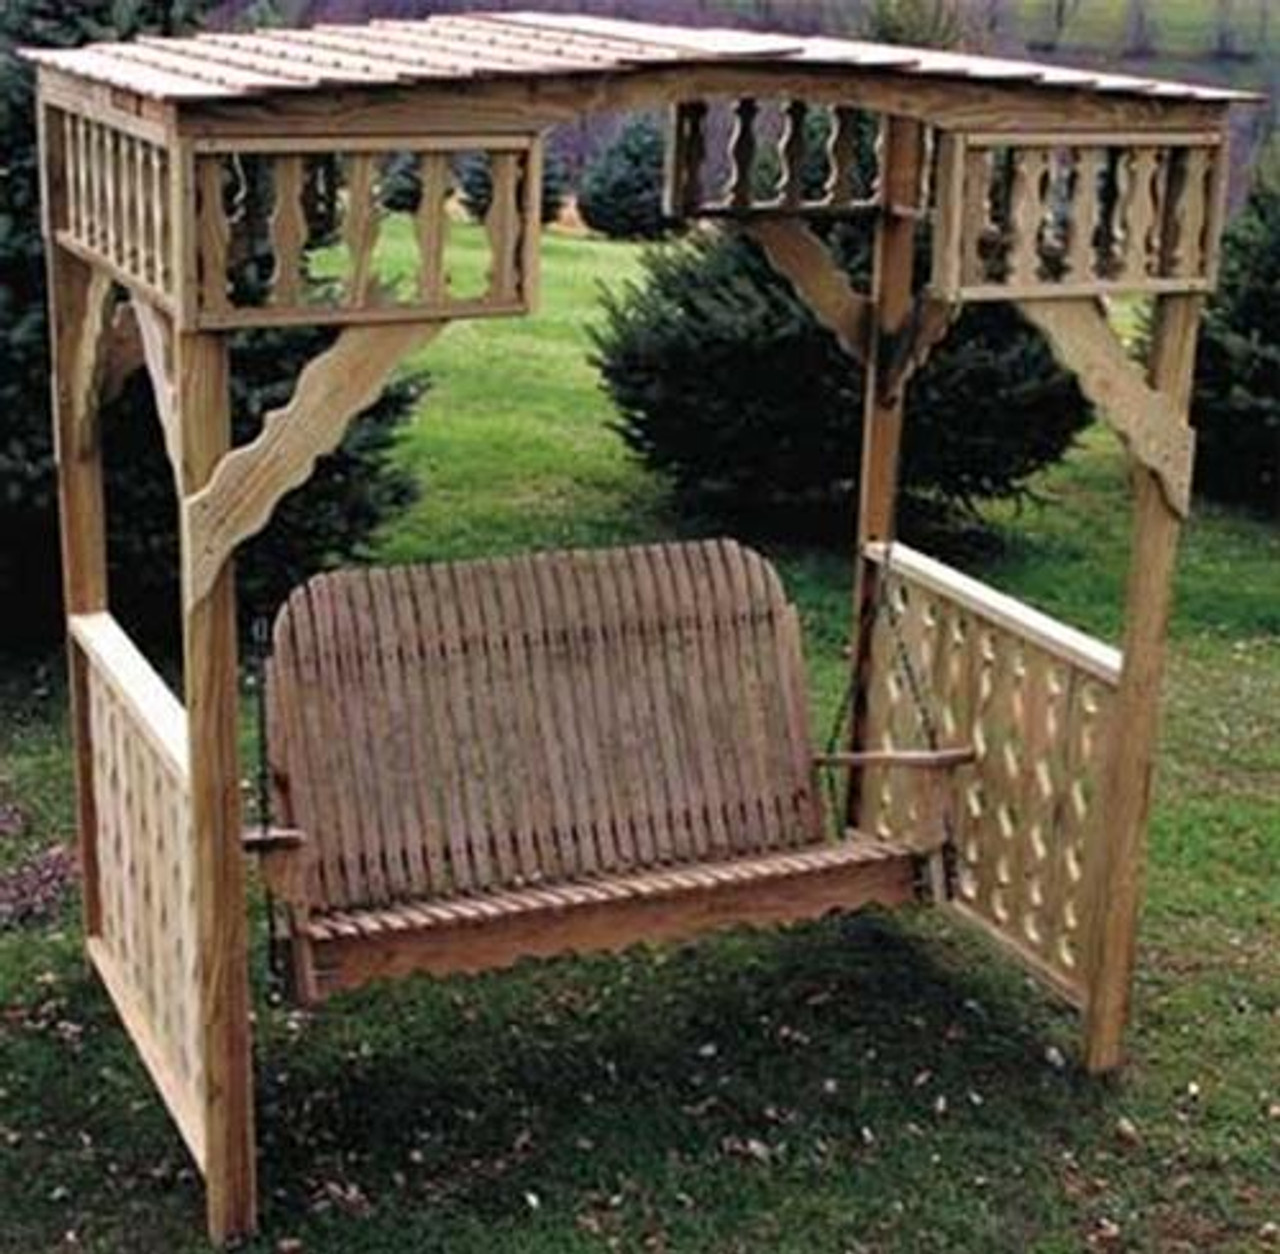 Cherry Tree Toys Adult Swing and Arbor Plans